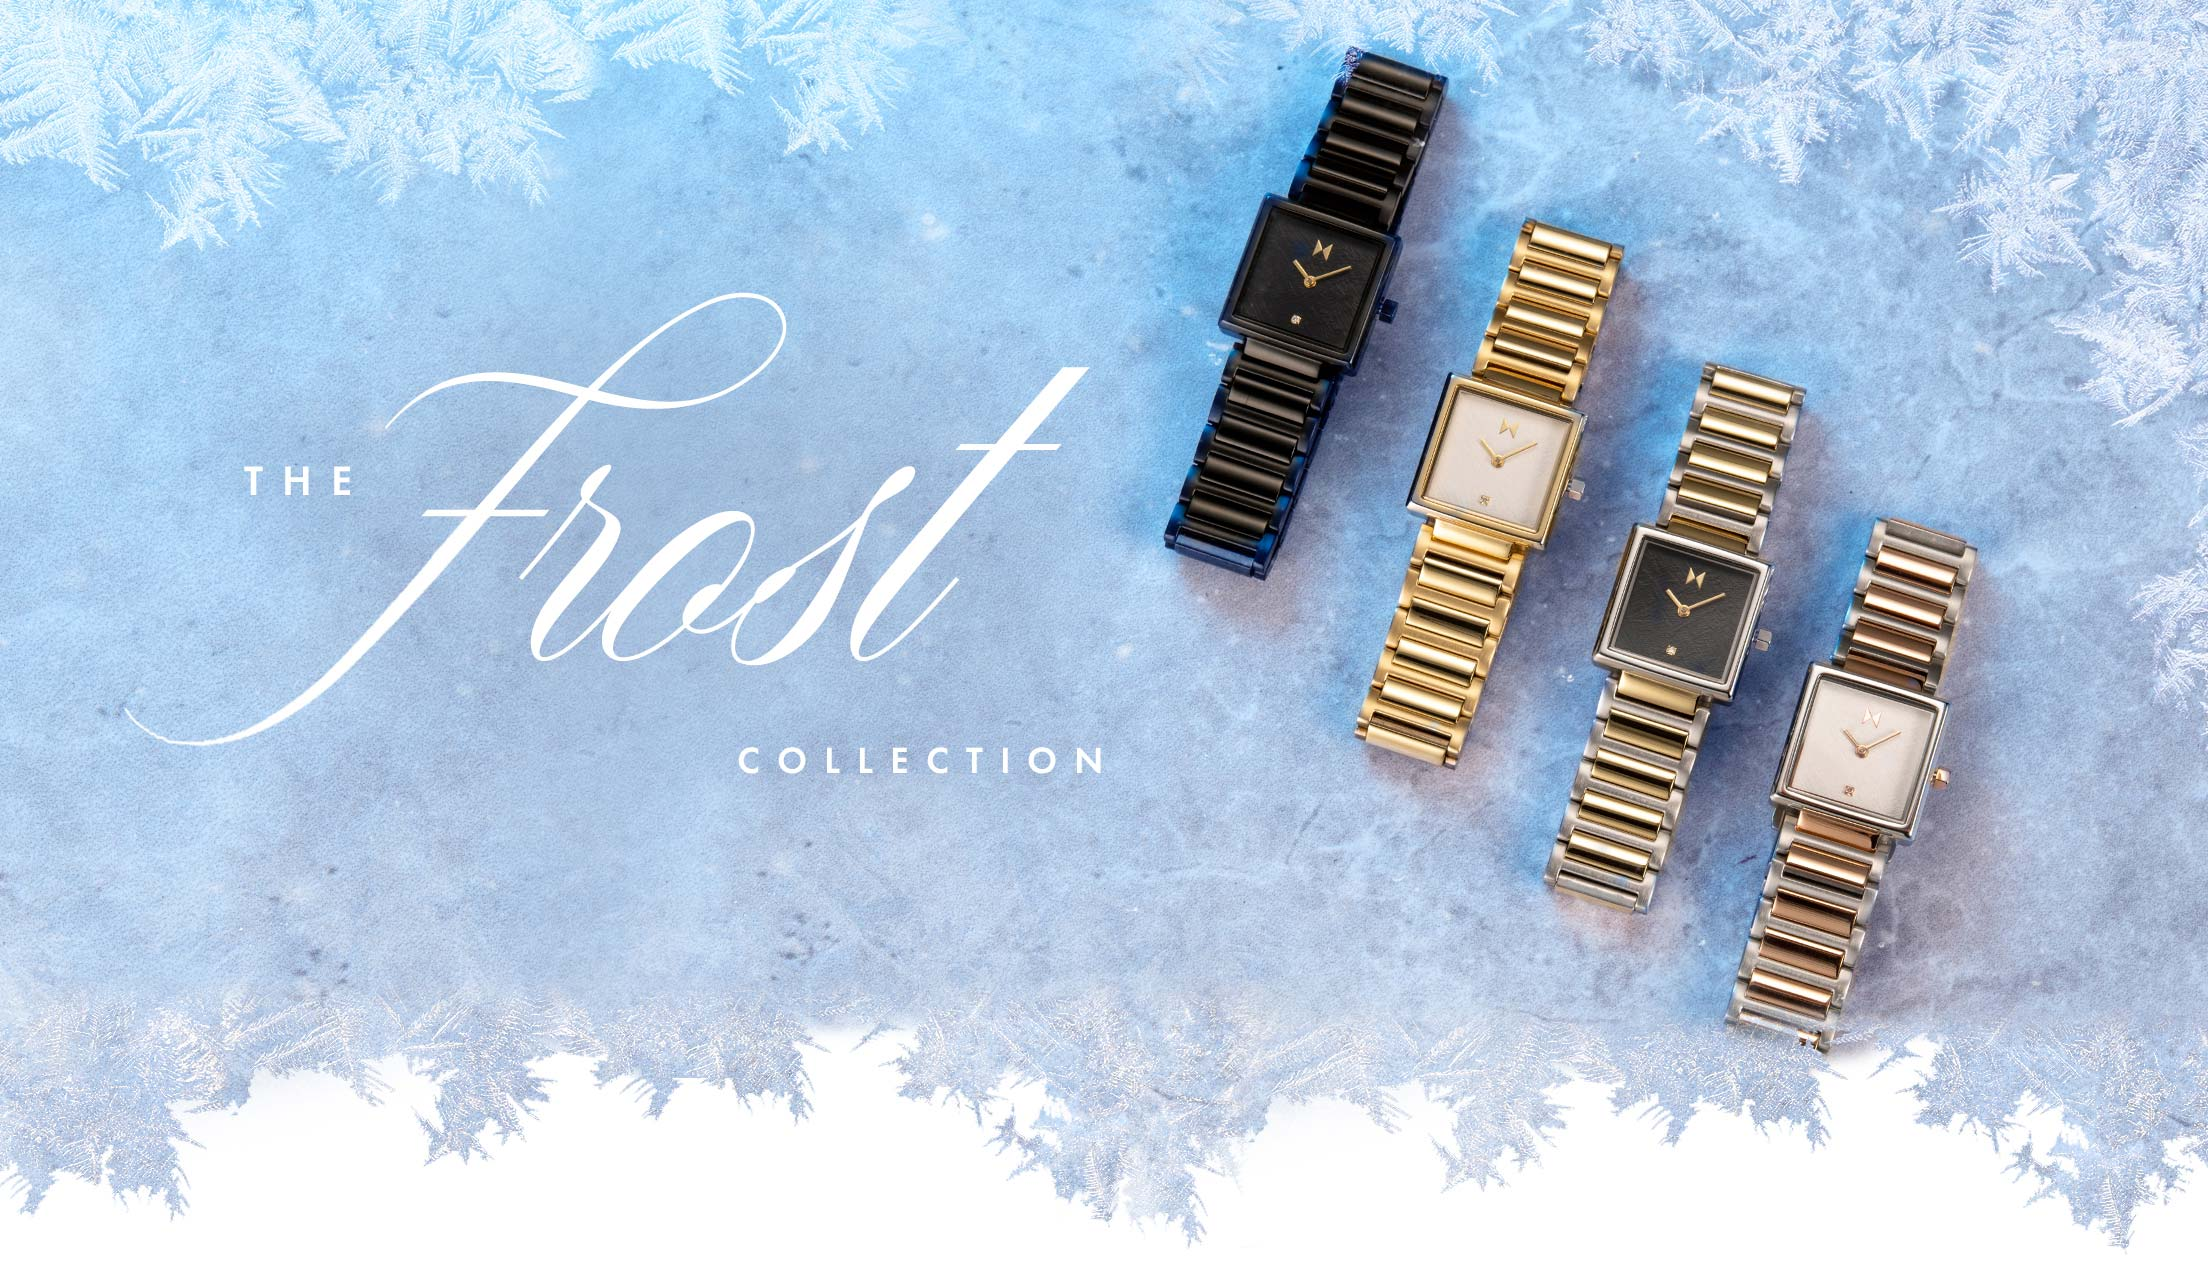 The Frost Collection